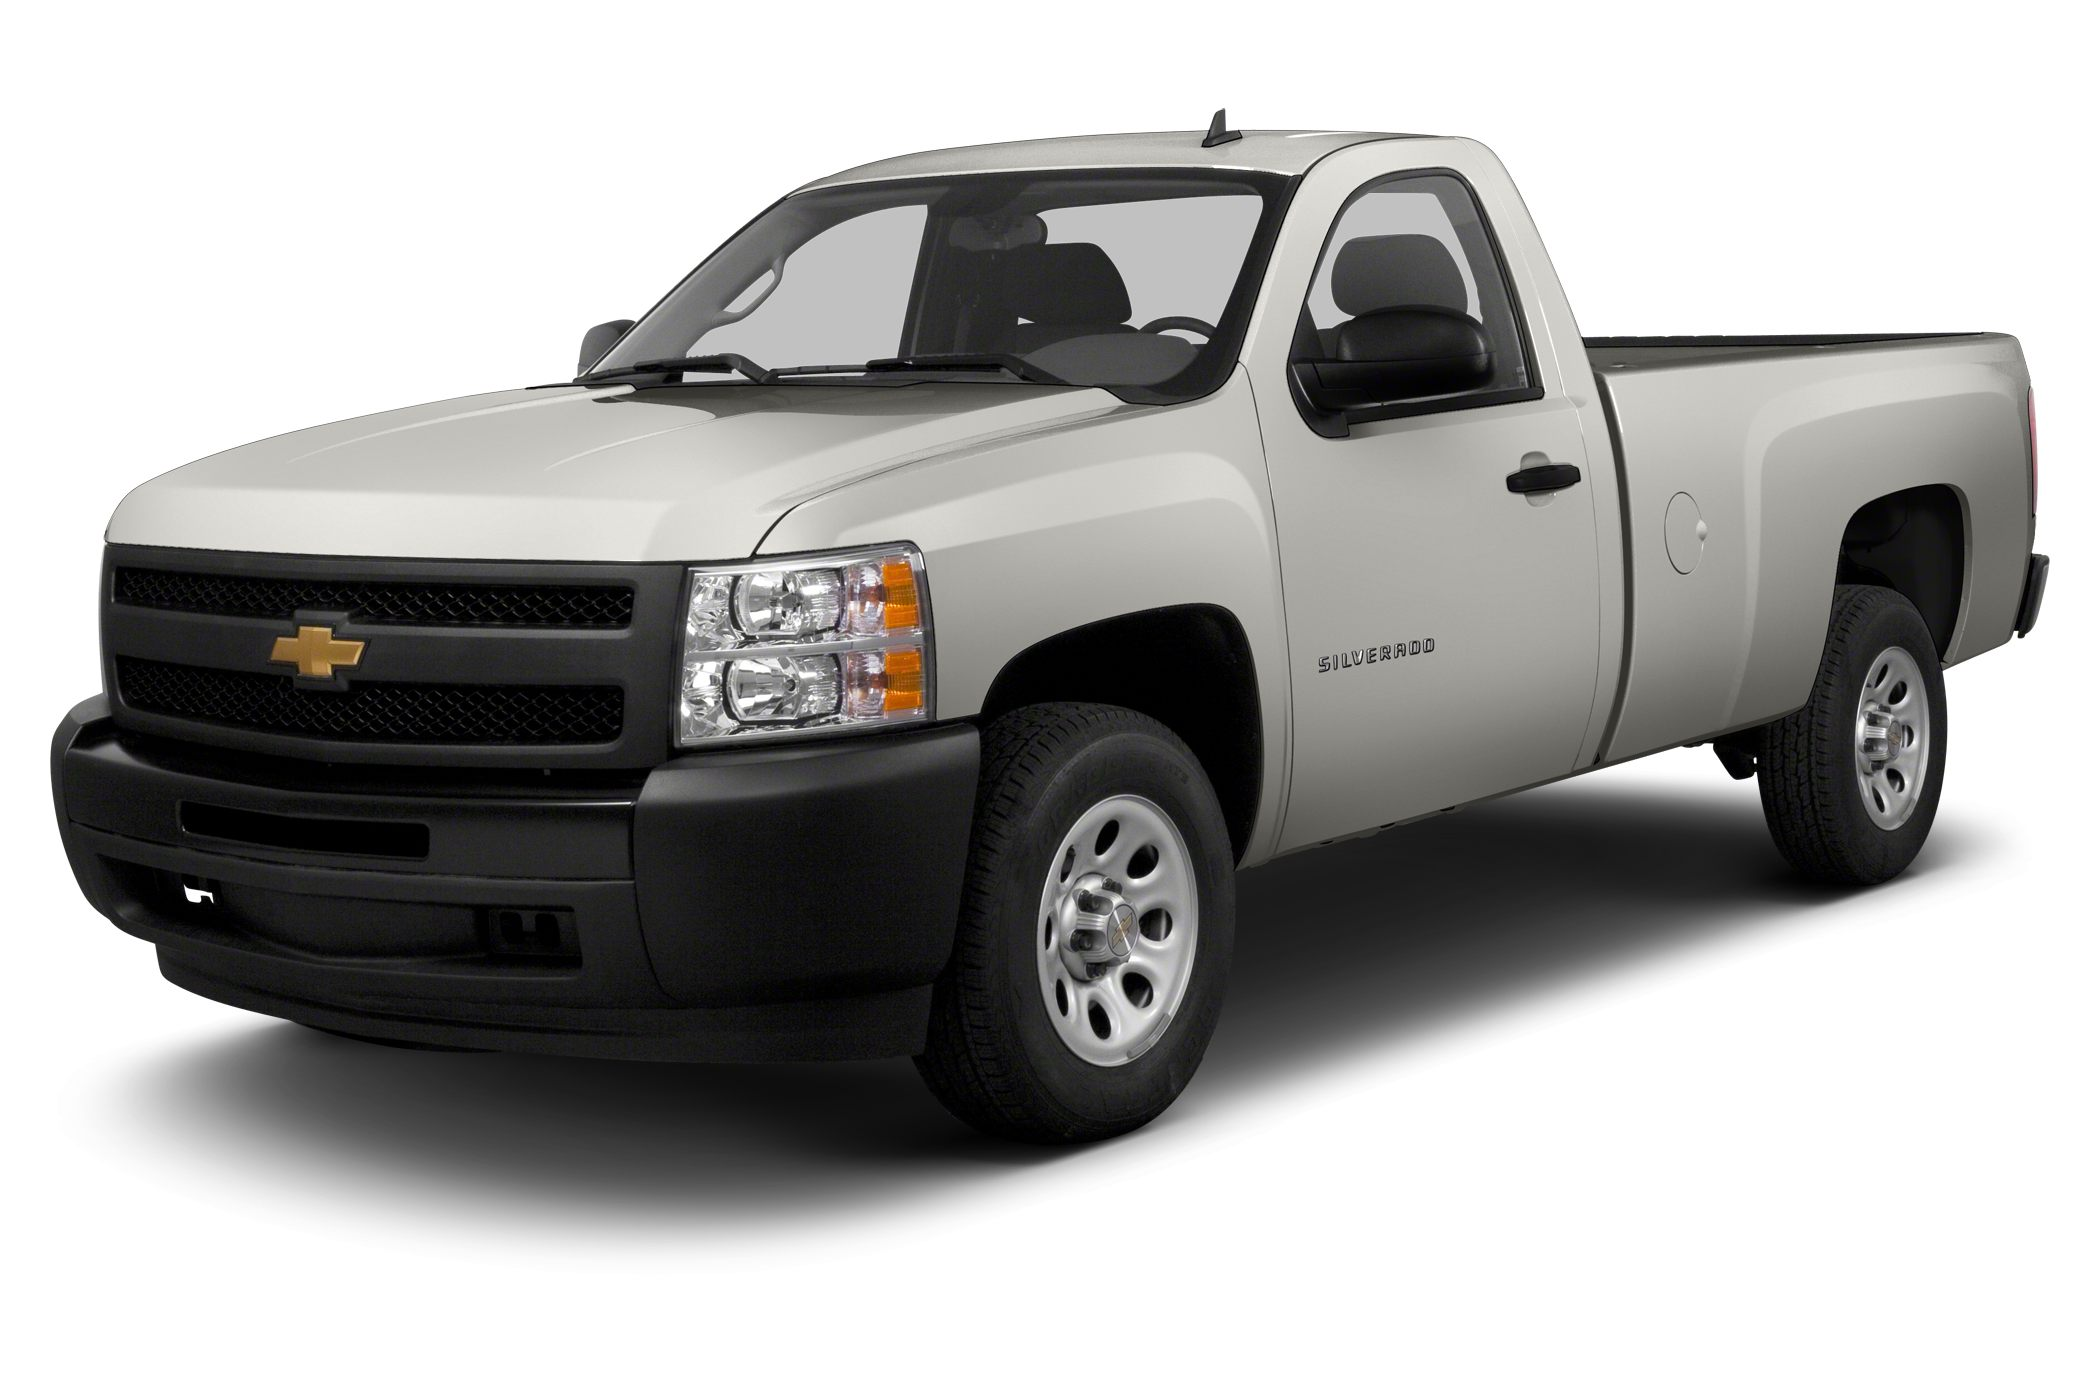 2013 Chevrolet Silverado 1500 LT Extended Cab Pickup for sale in Parkersburg for $31,750 with 25,892 miles.